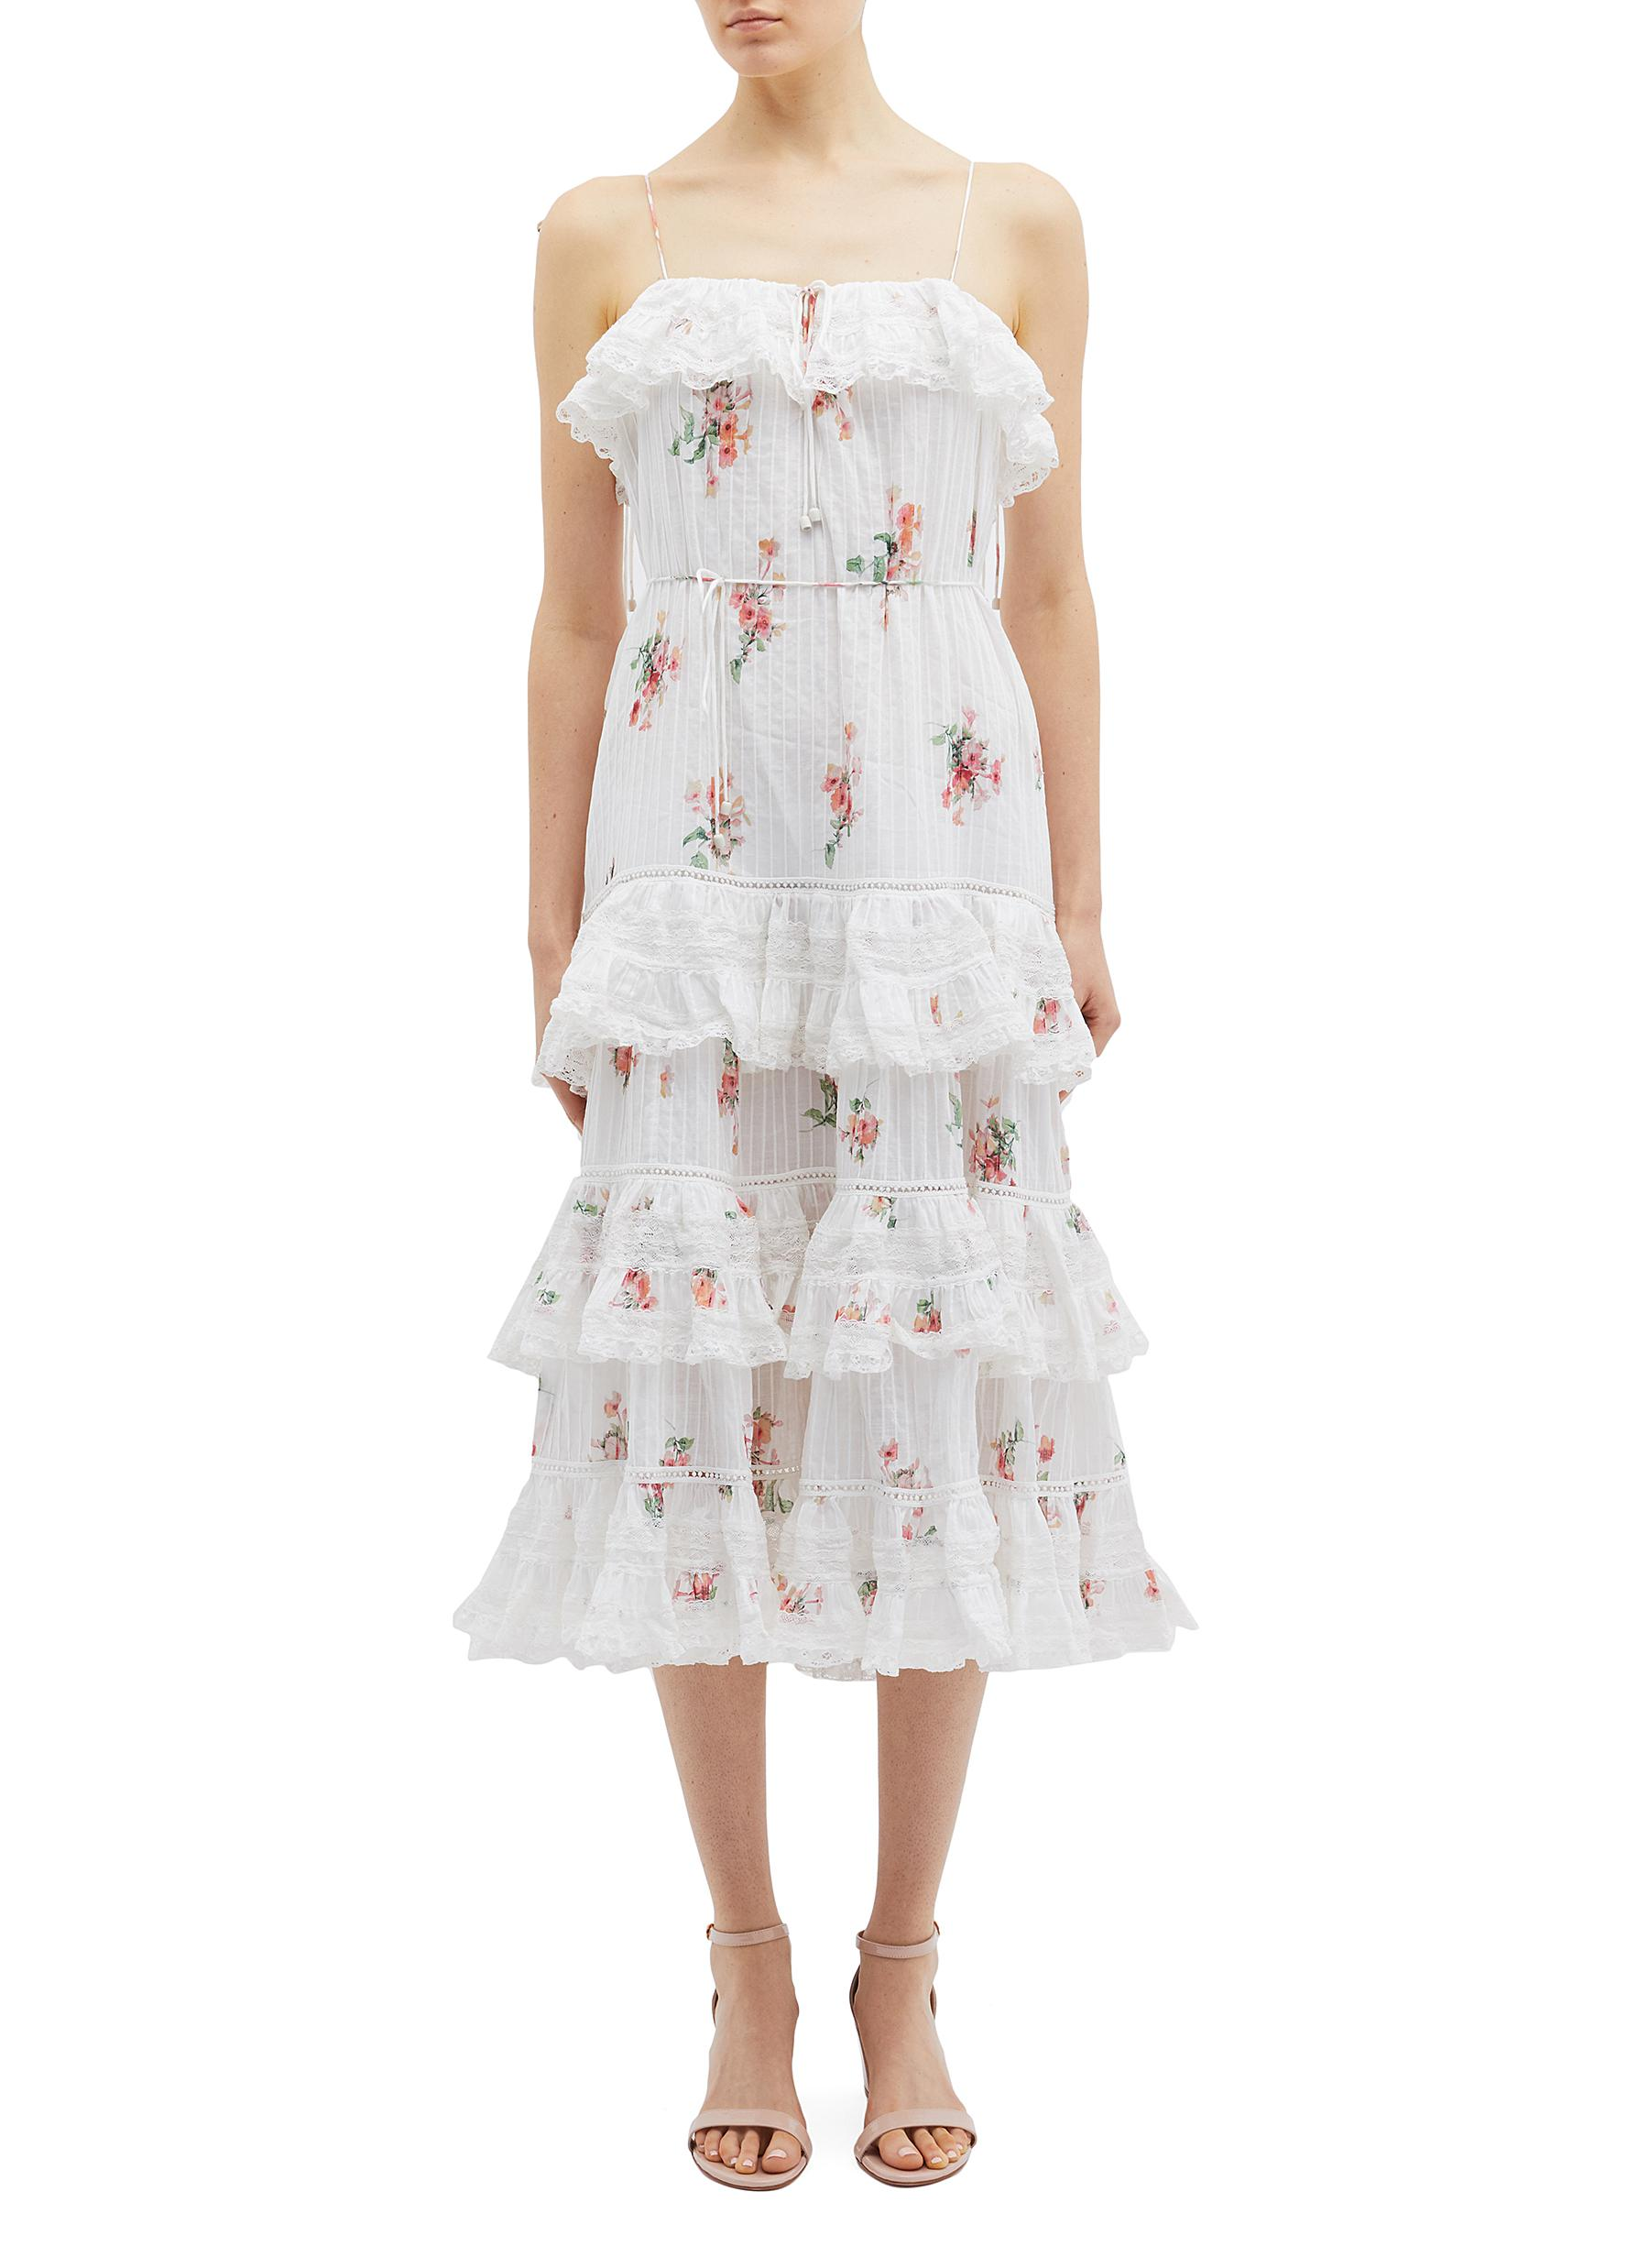 Heathers floating bouquet print tiered ruffle camisole dress by Zimmermann